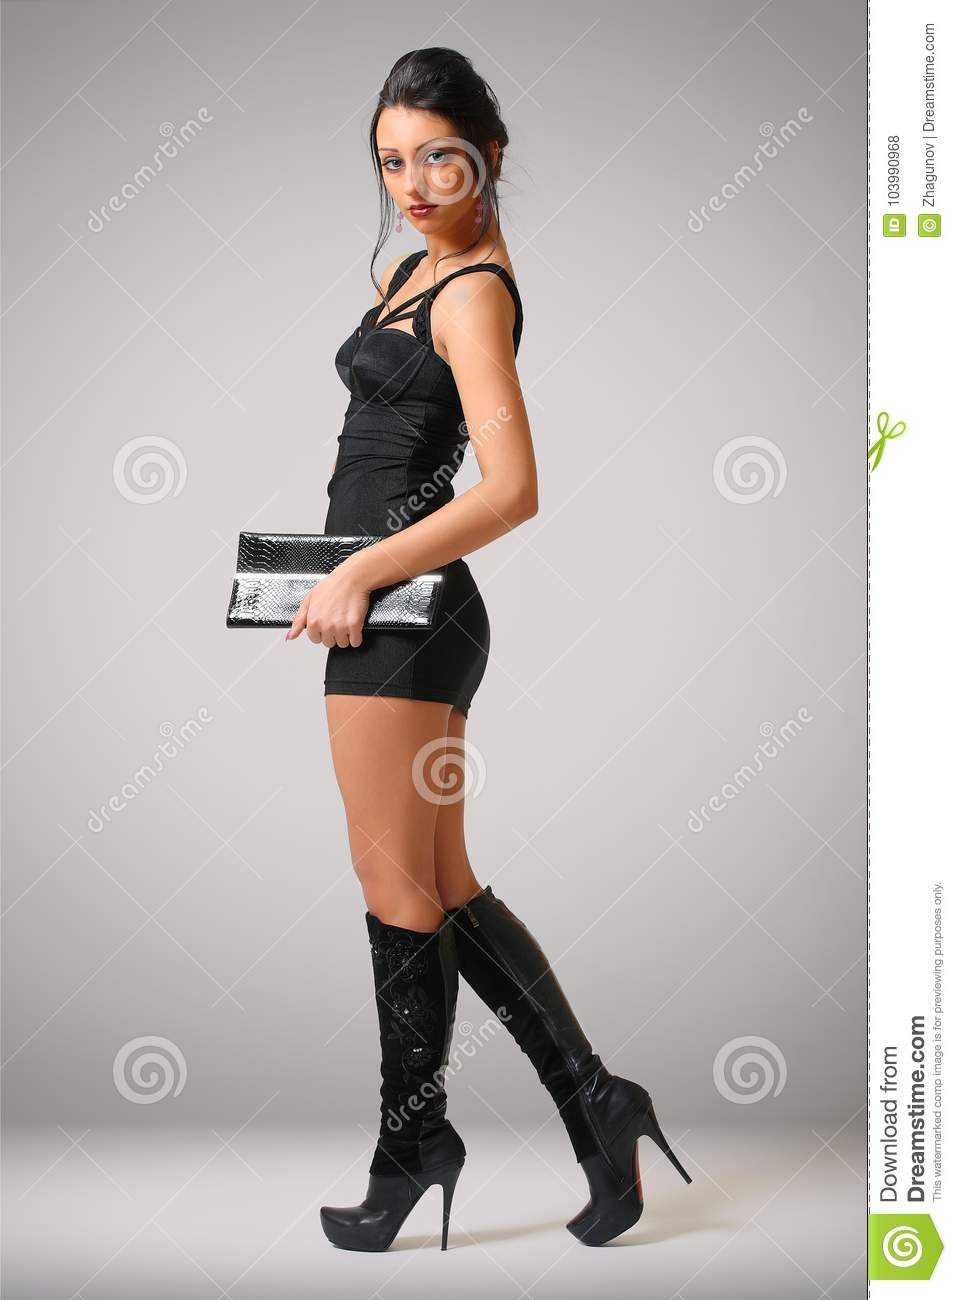 8f08a22d268b Woman in tight black dress stock photo. Image of fashion - 103990968